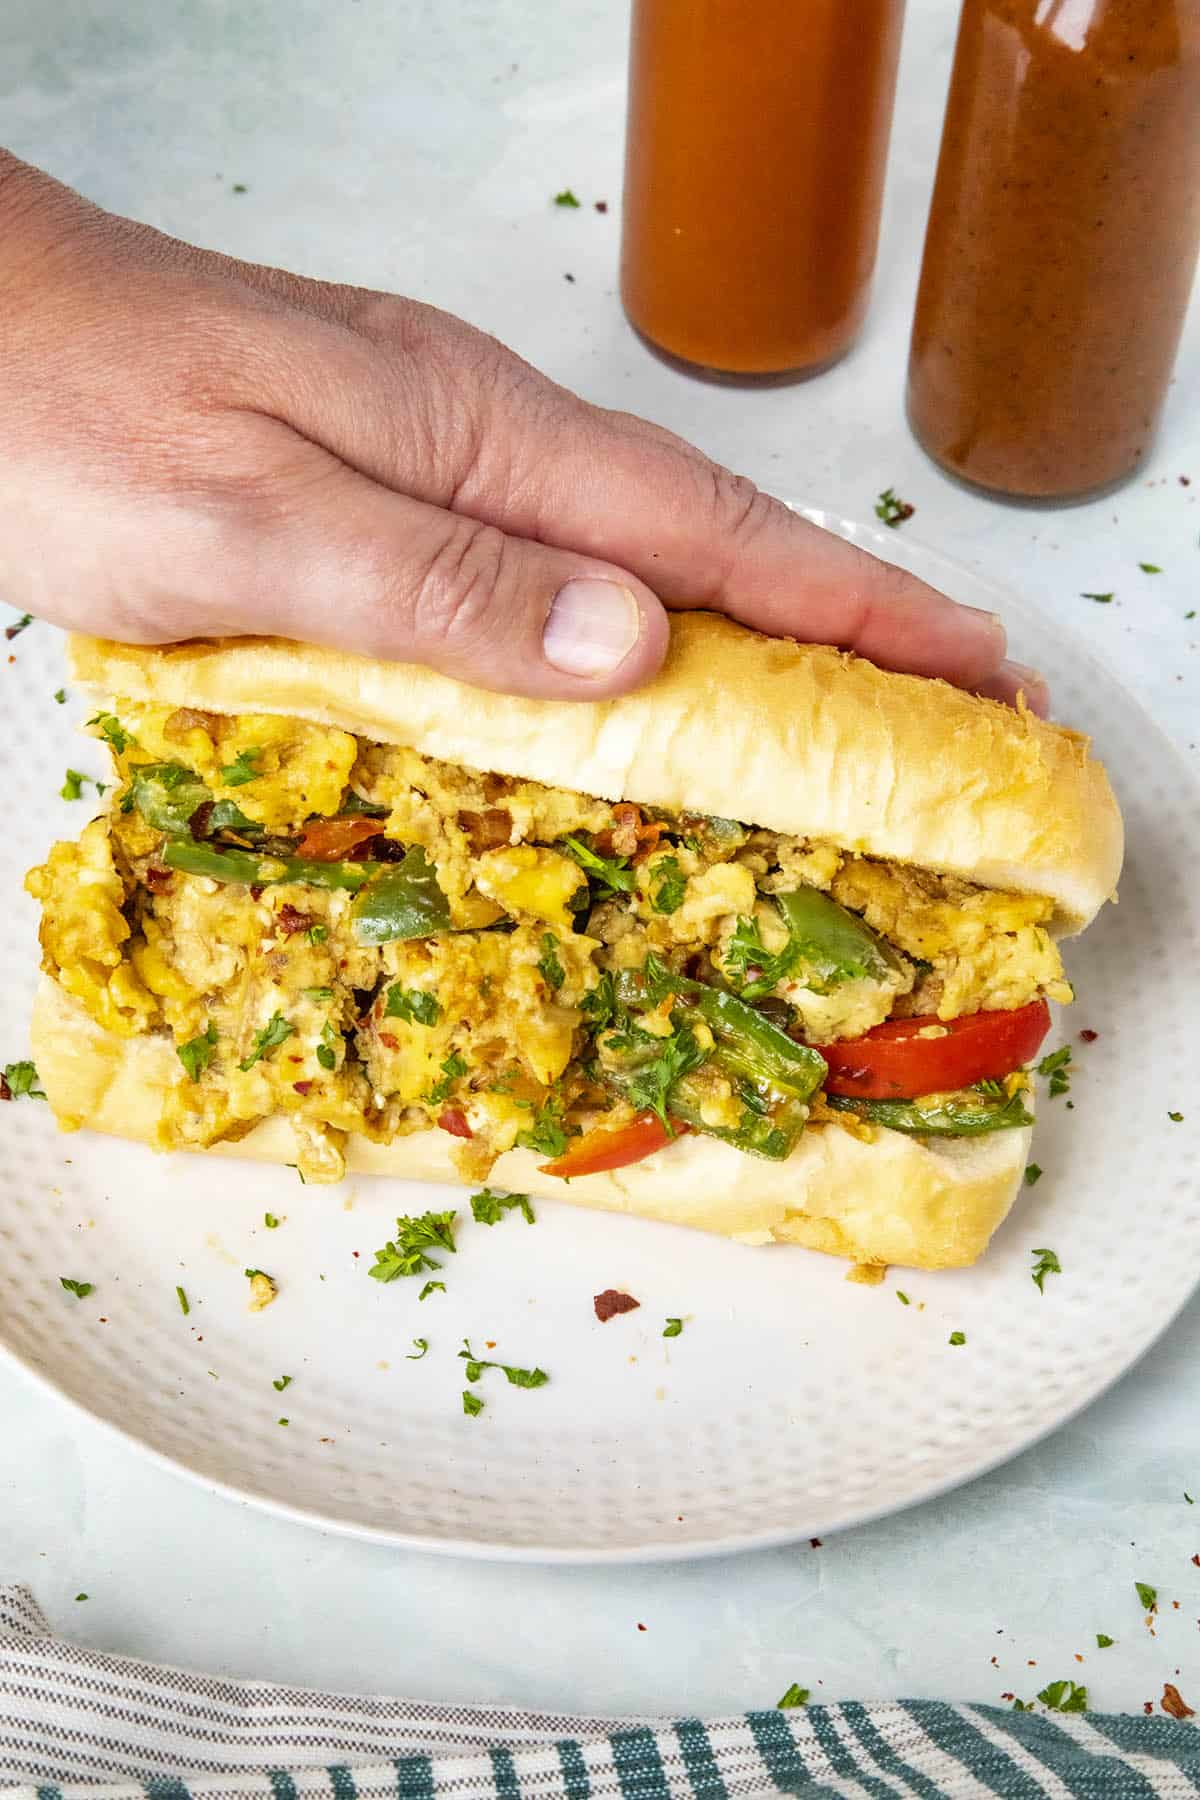 Pepper and Egg Sandwich, ready to enjoy